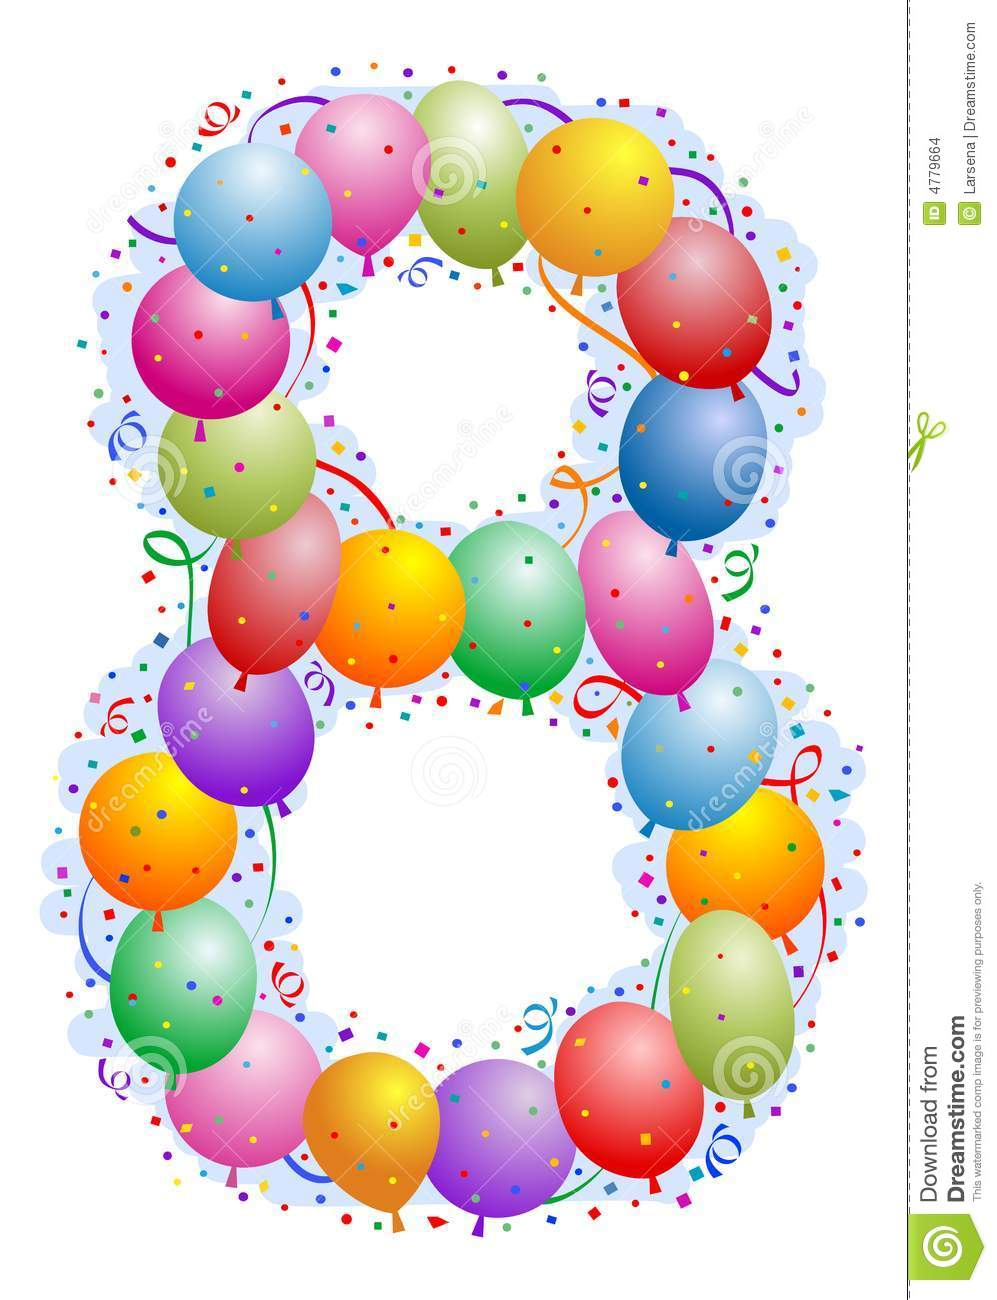 Balloons And Confetti Number 8 Stock Images - Image: 4779664